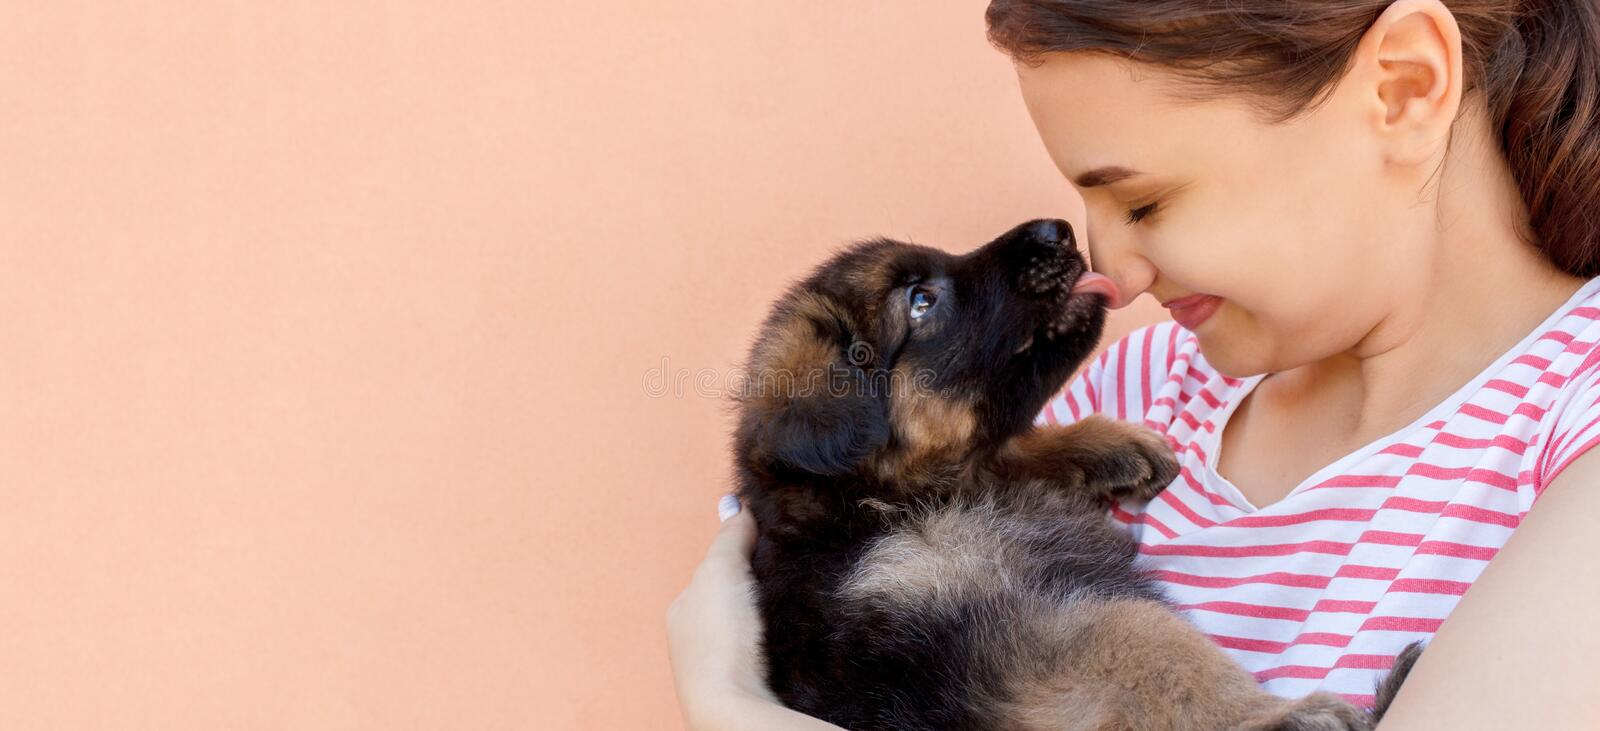 Cute German shepherd puppy kissing woman`s nose.  stock photography